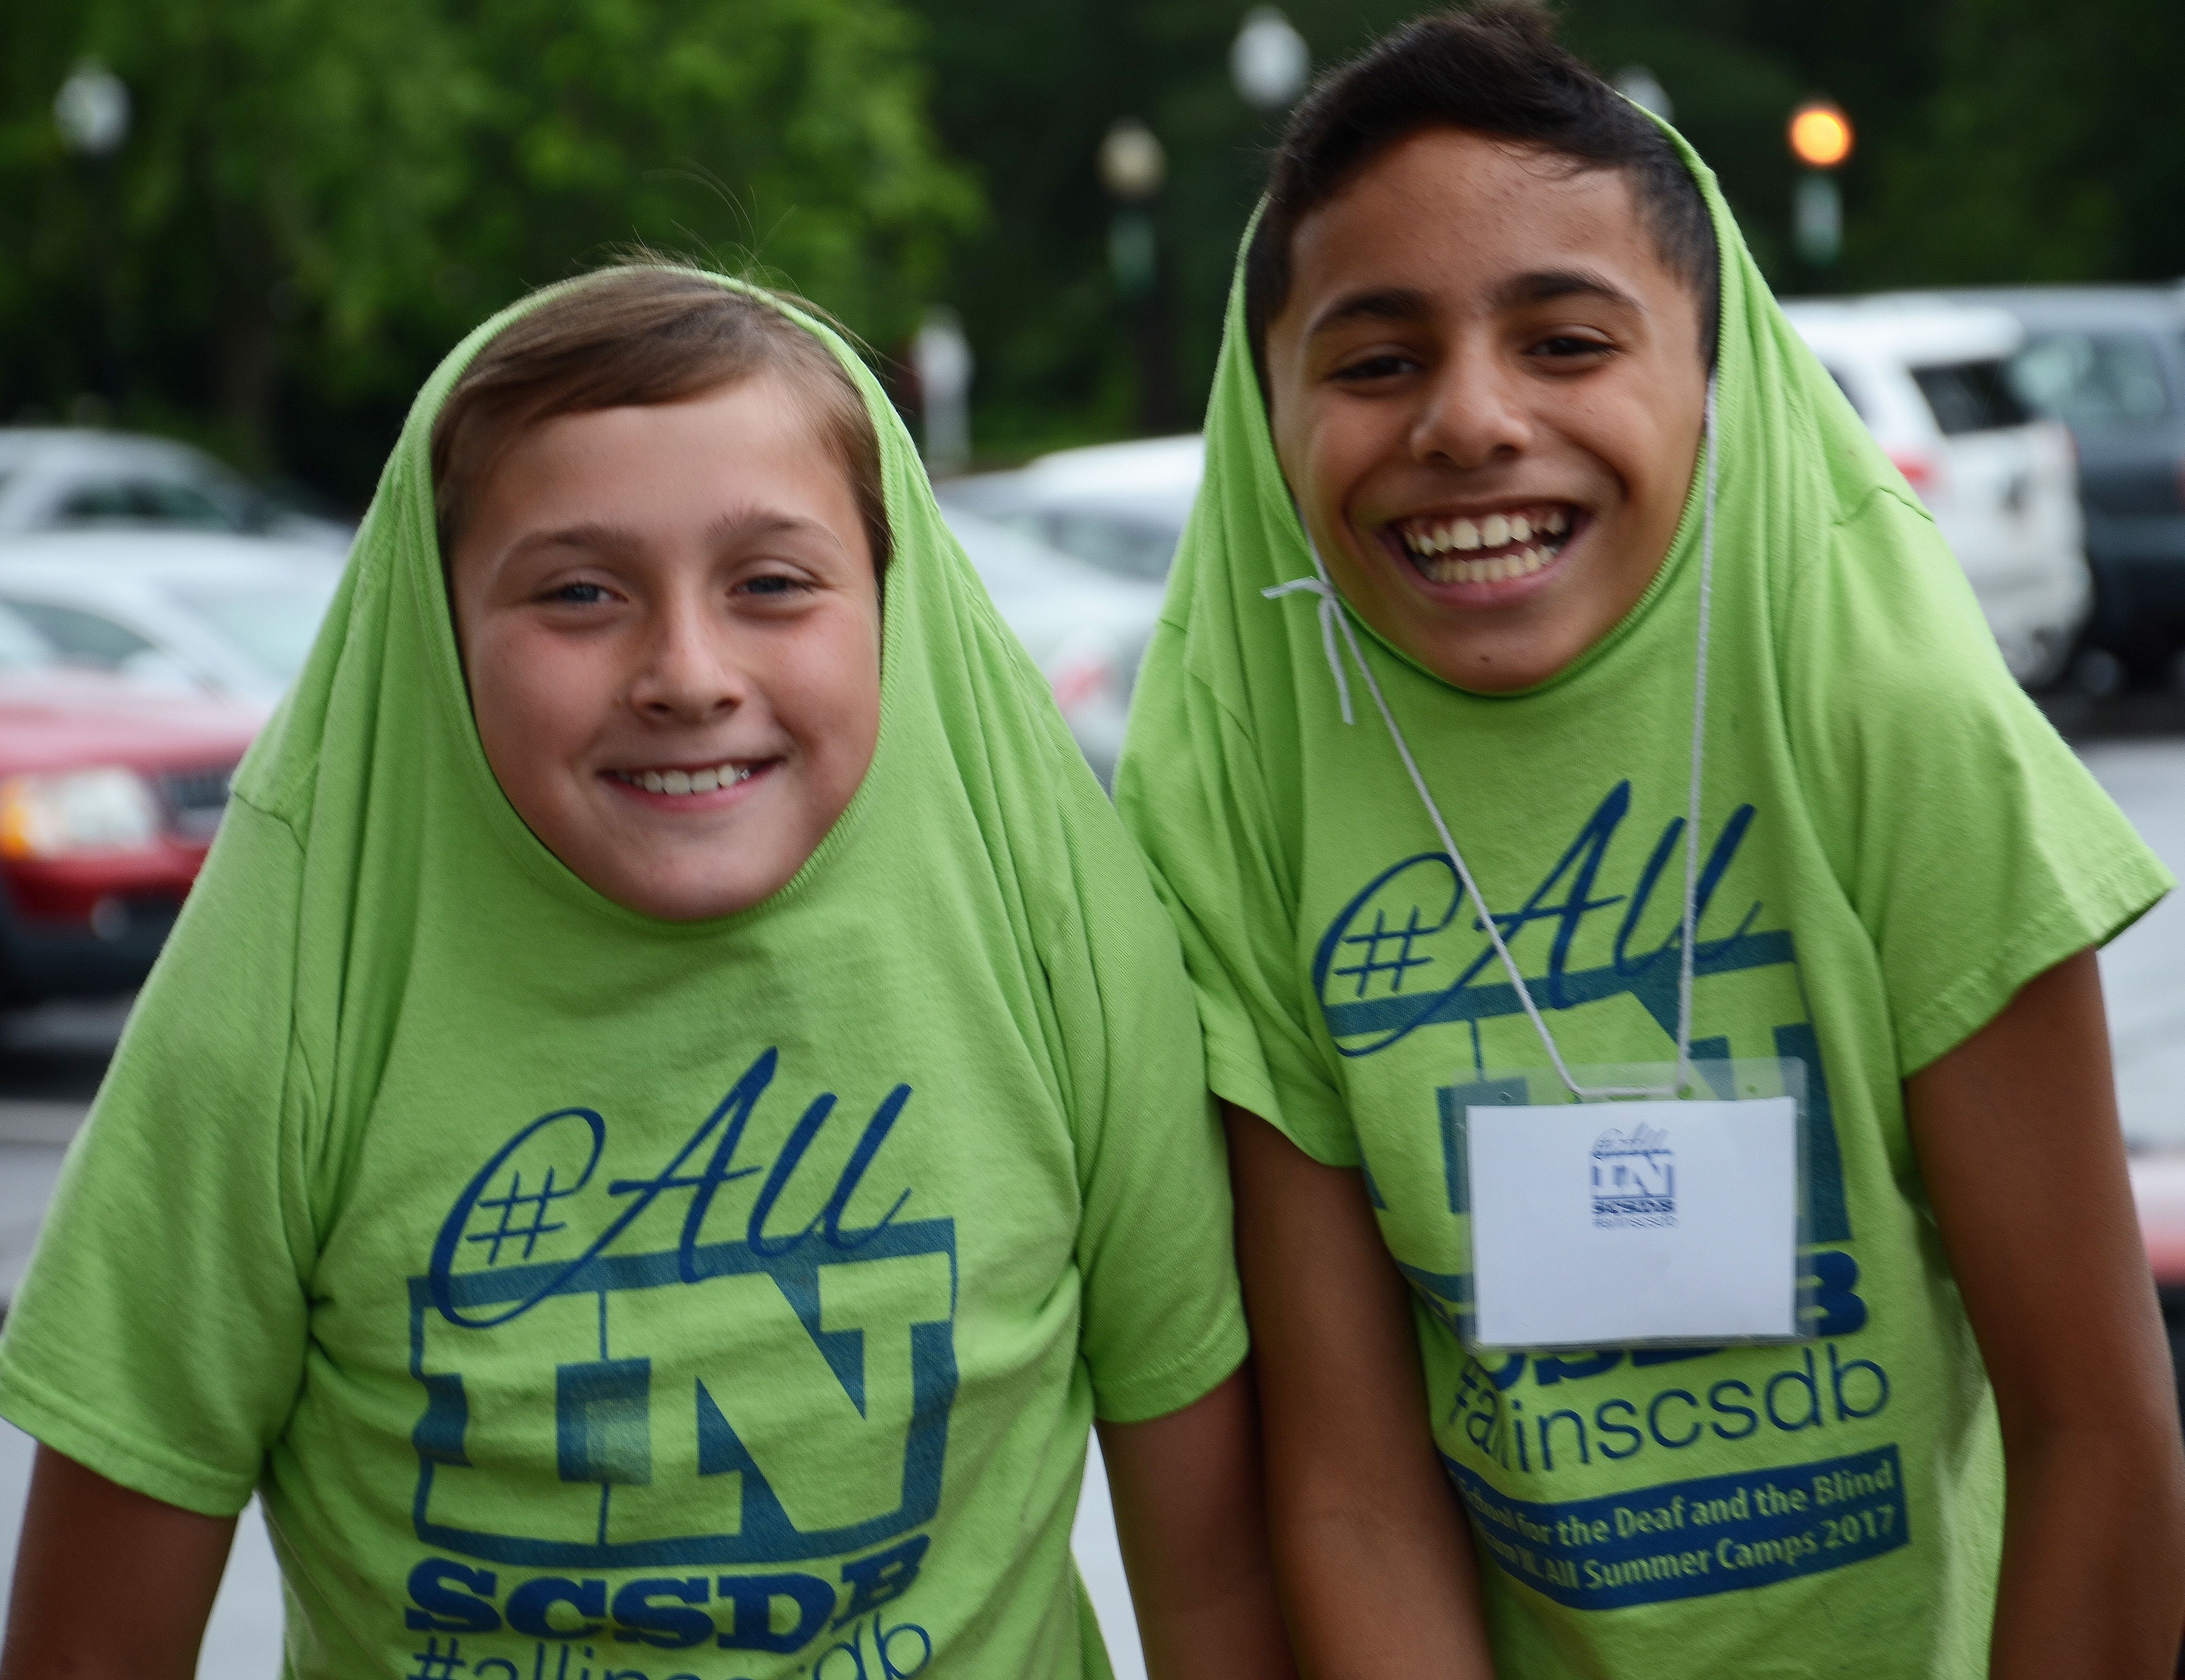 Teen campers pulled their T-shirts over their heads and cut up for the camera.